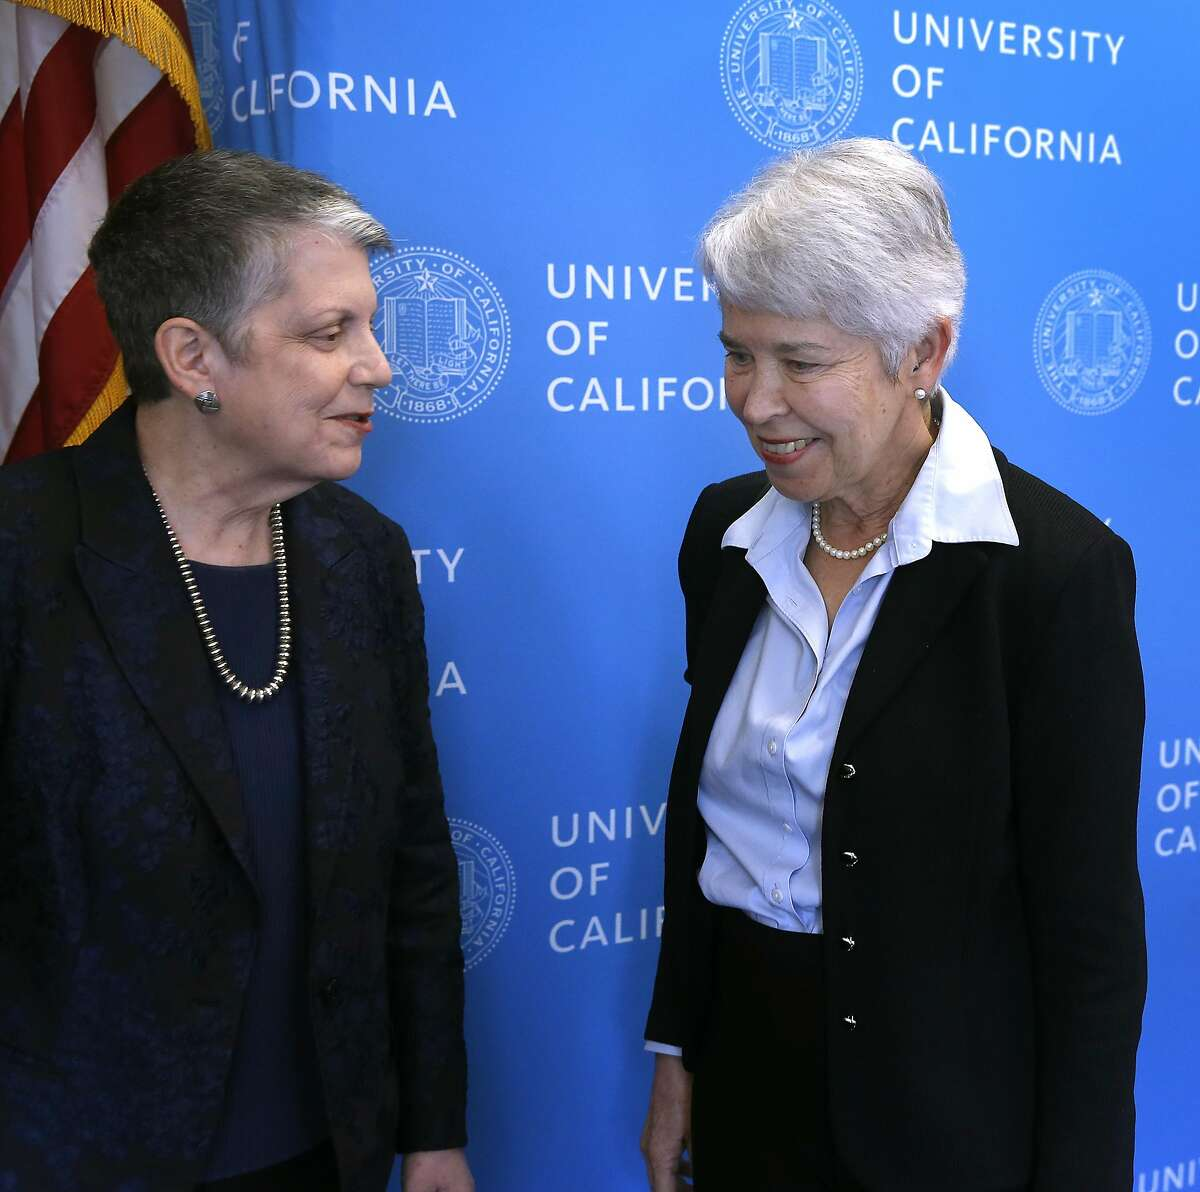 University of California president Janel Napolitano speaks with Carol Christ after she is confirmed as the new chancellor of UC Berkeley by the Board of Regents in San Francisco, Calif. on Thursday, March 16, 2017. Christ succeeds Nicholas Dirks who is stepping down at the end of the current school year.